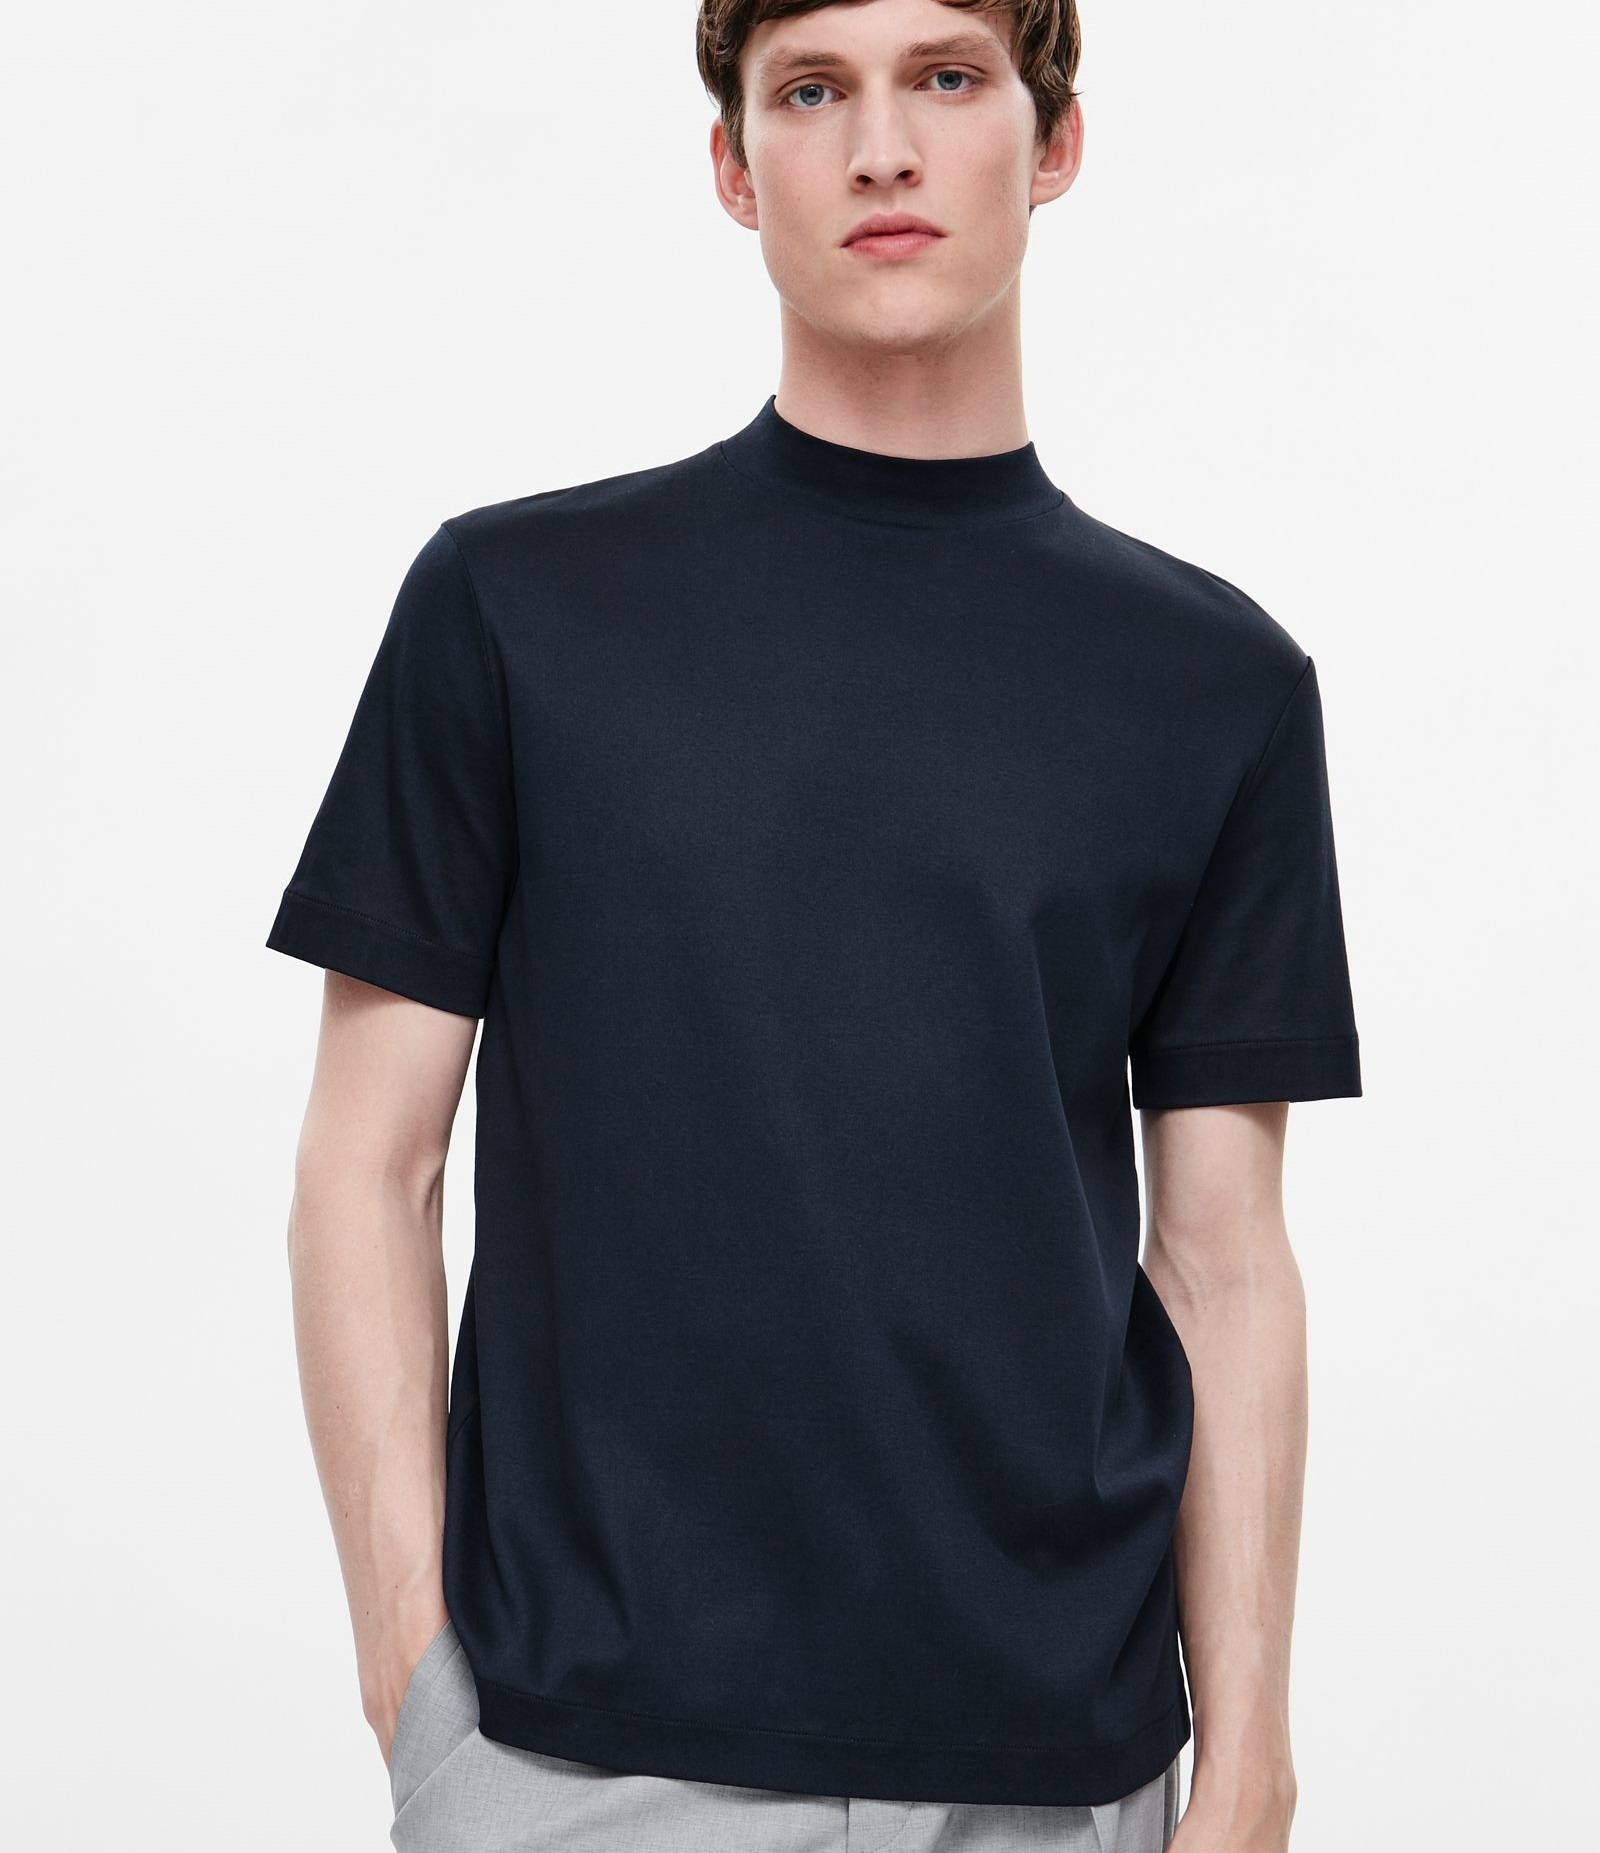 Cos men high neck t shirt offwhite buyma for High neck tee shirts